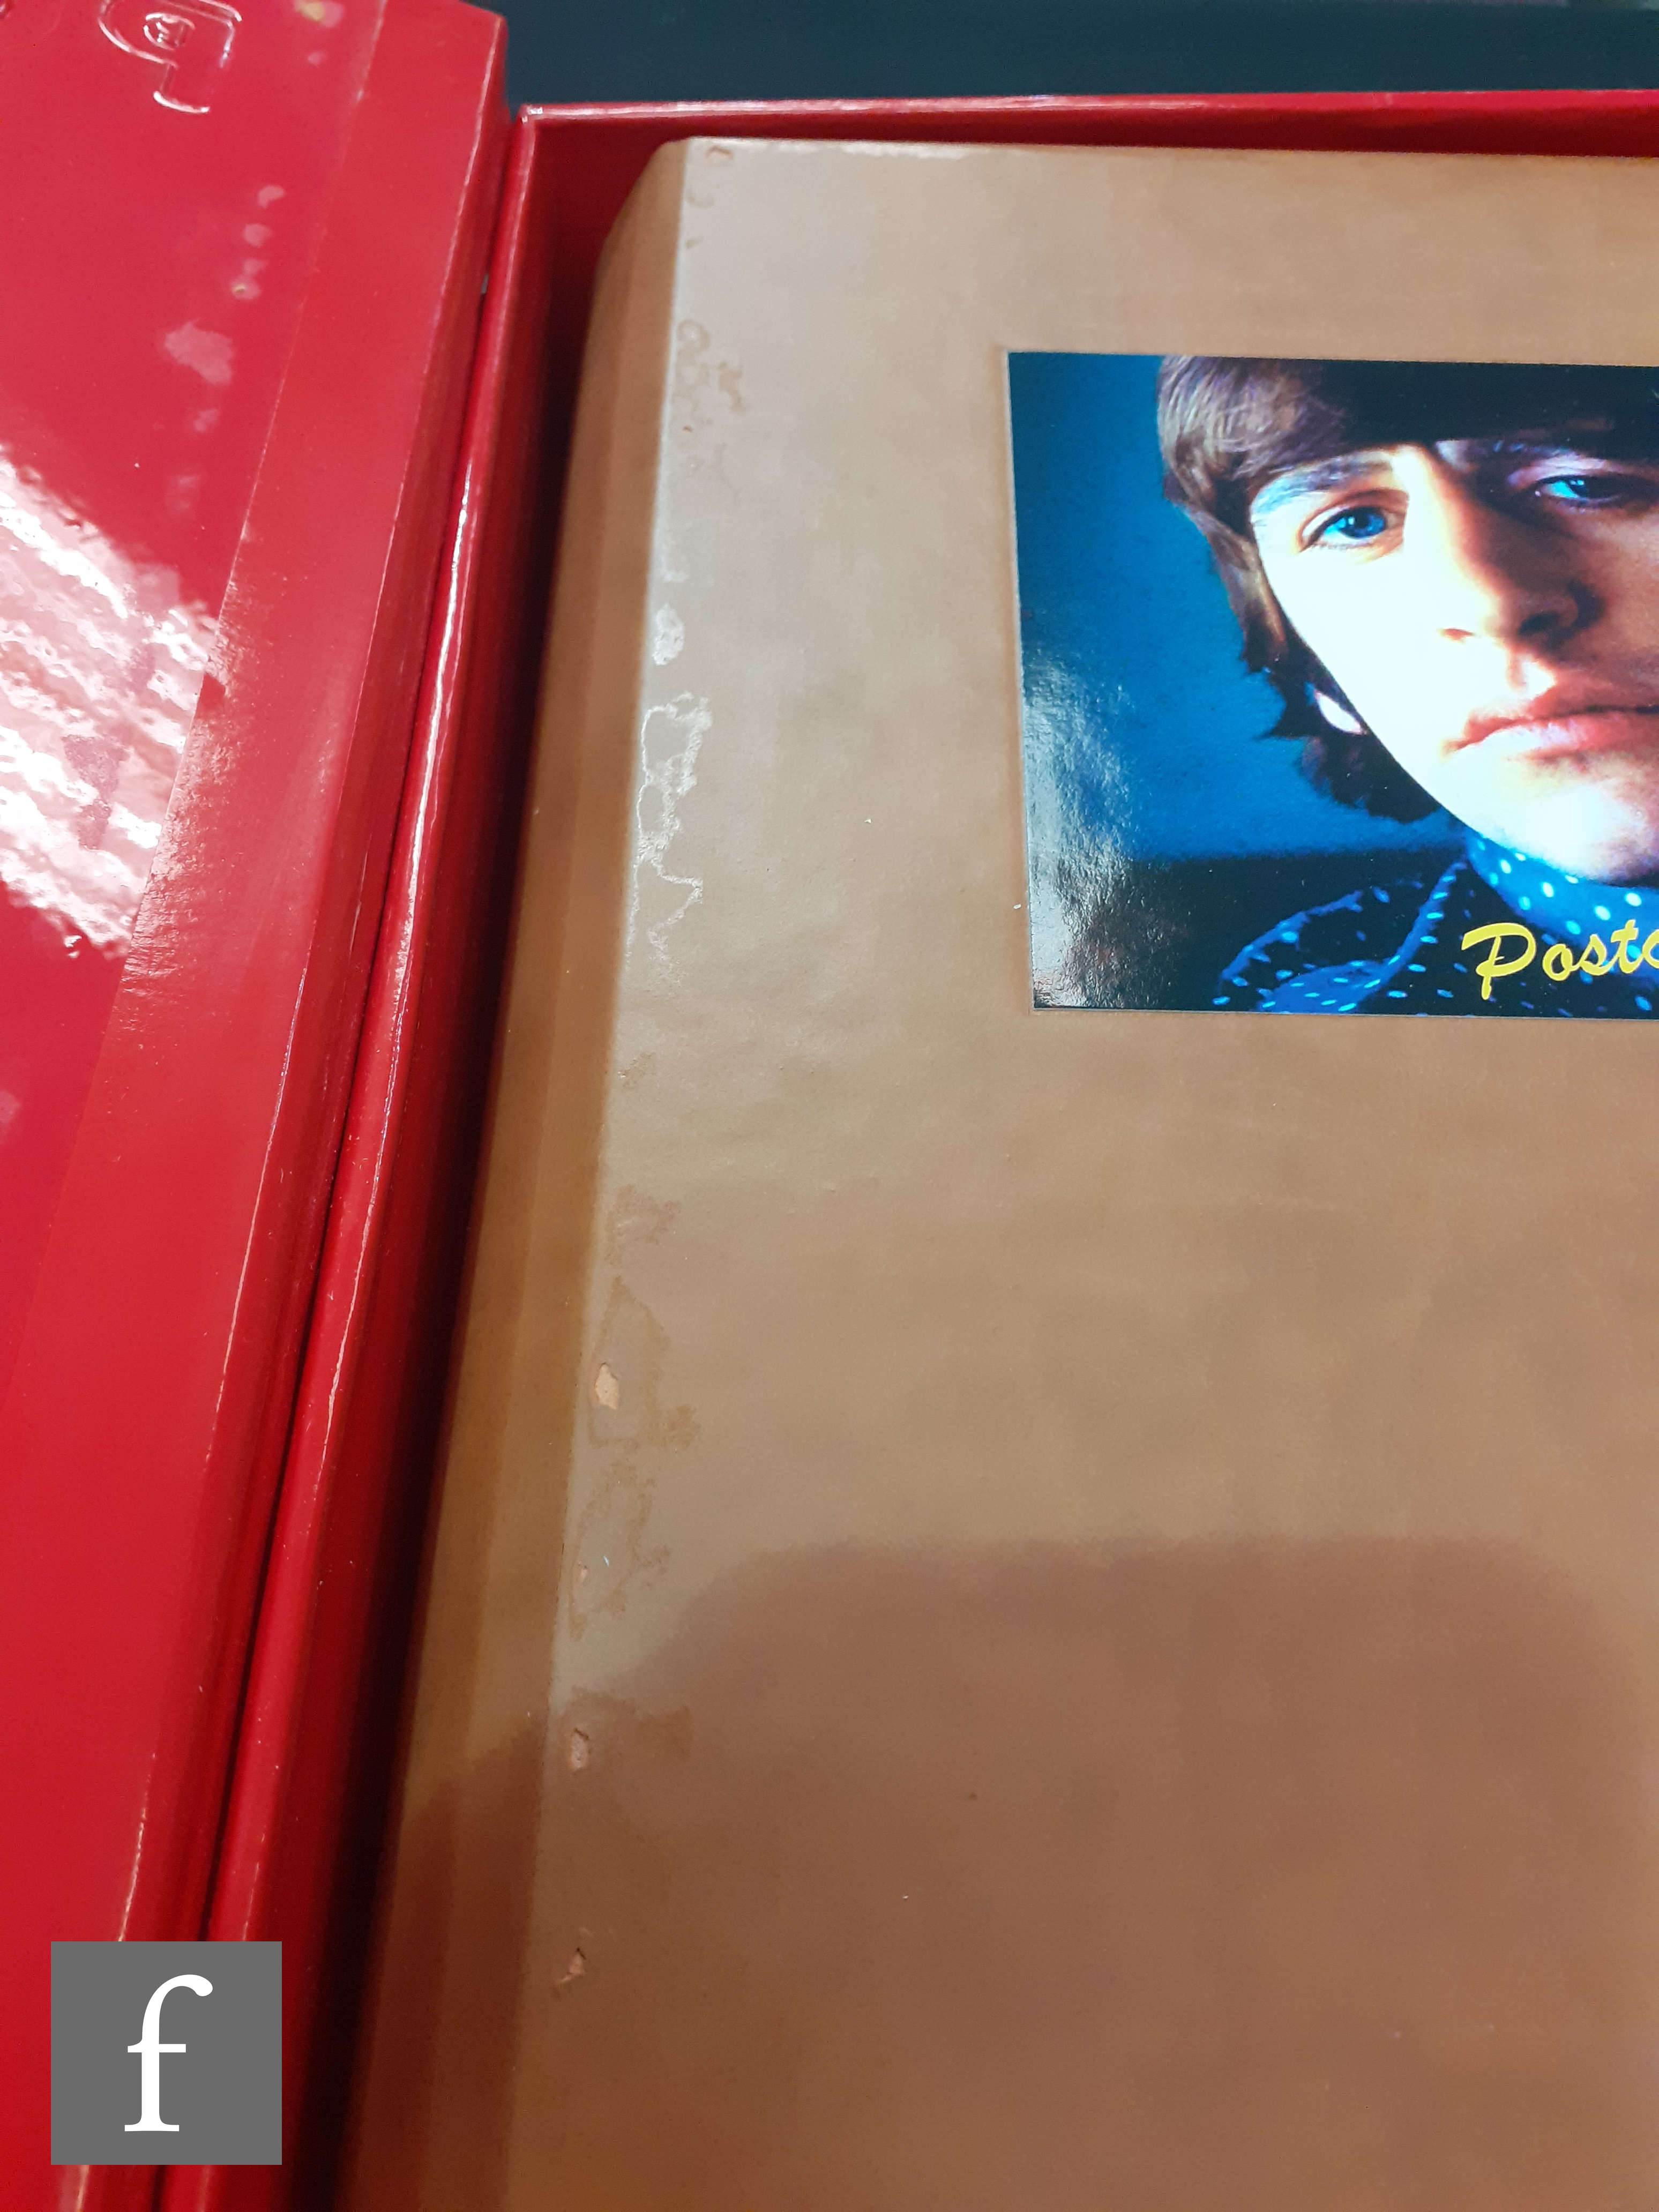 A limited edition Beatles 'Postcards from the boys', Genesis Publications, the metal red post box - Image 2 of 8